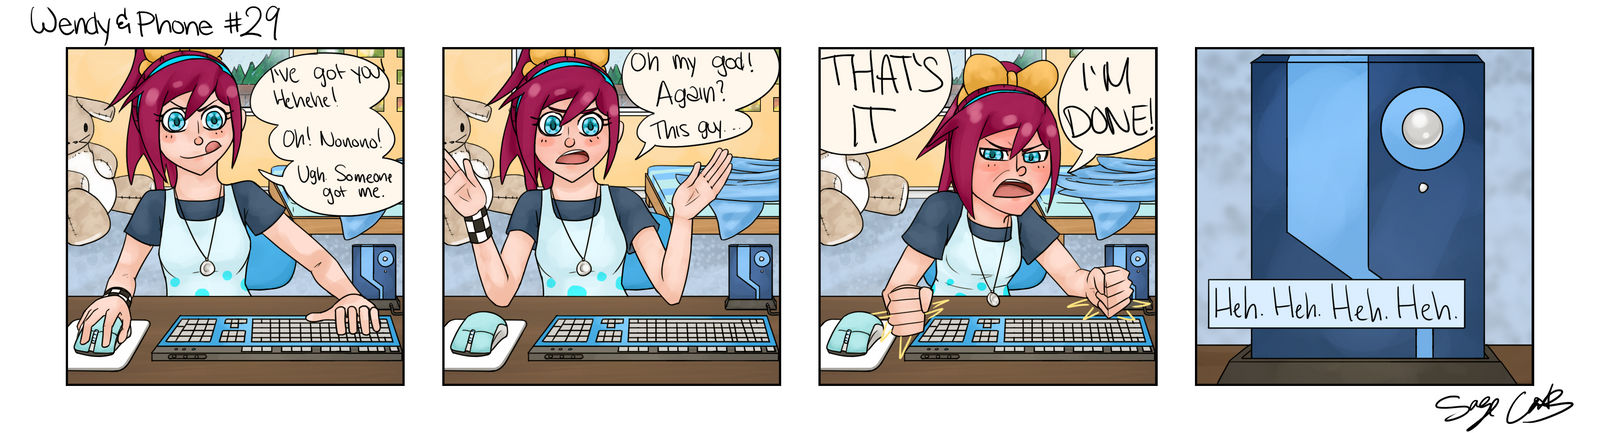 Wendy and Phone #29 by Mr-Sage